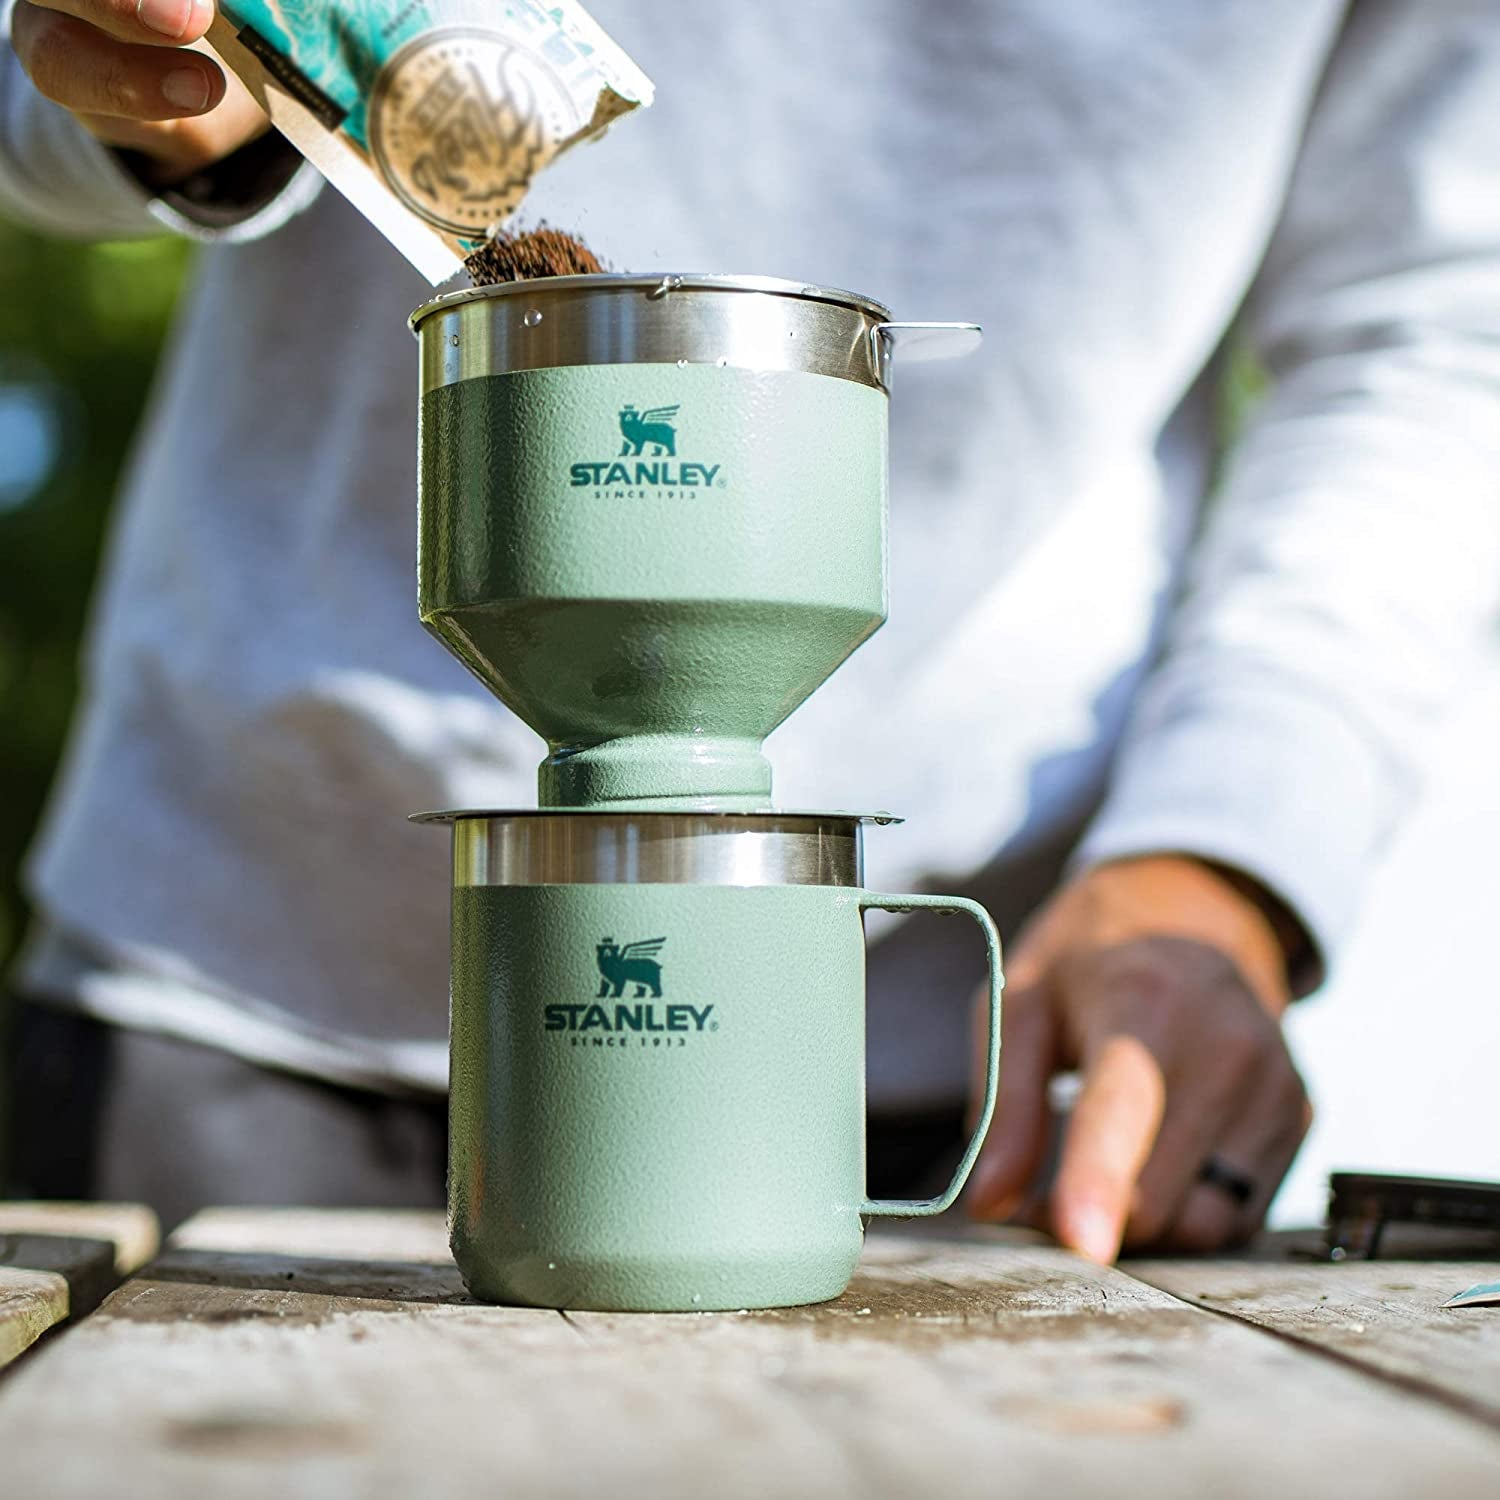 the green pour over coffee maker